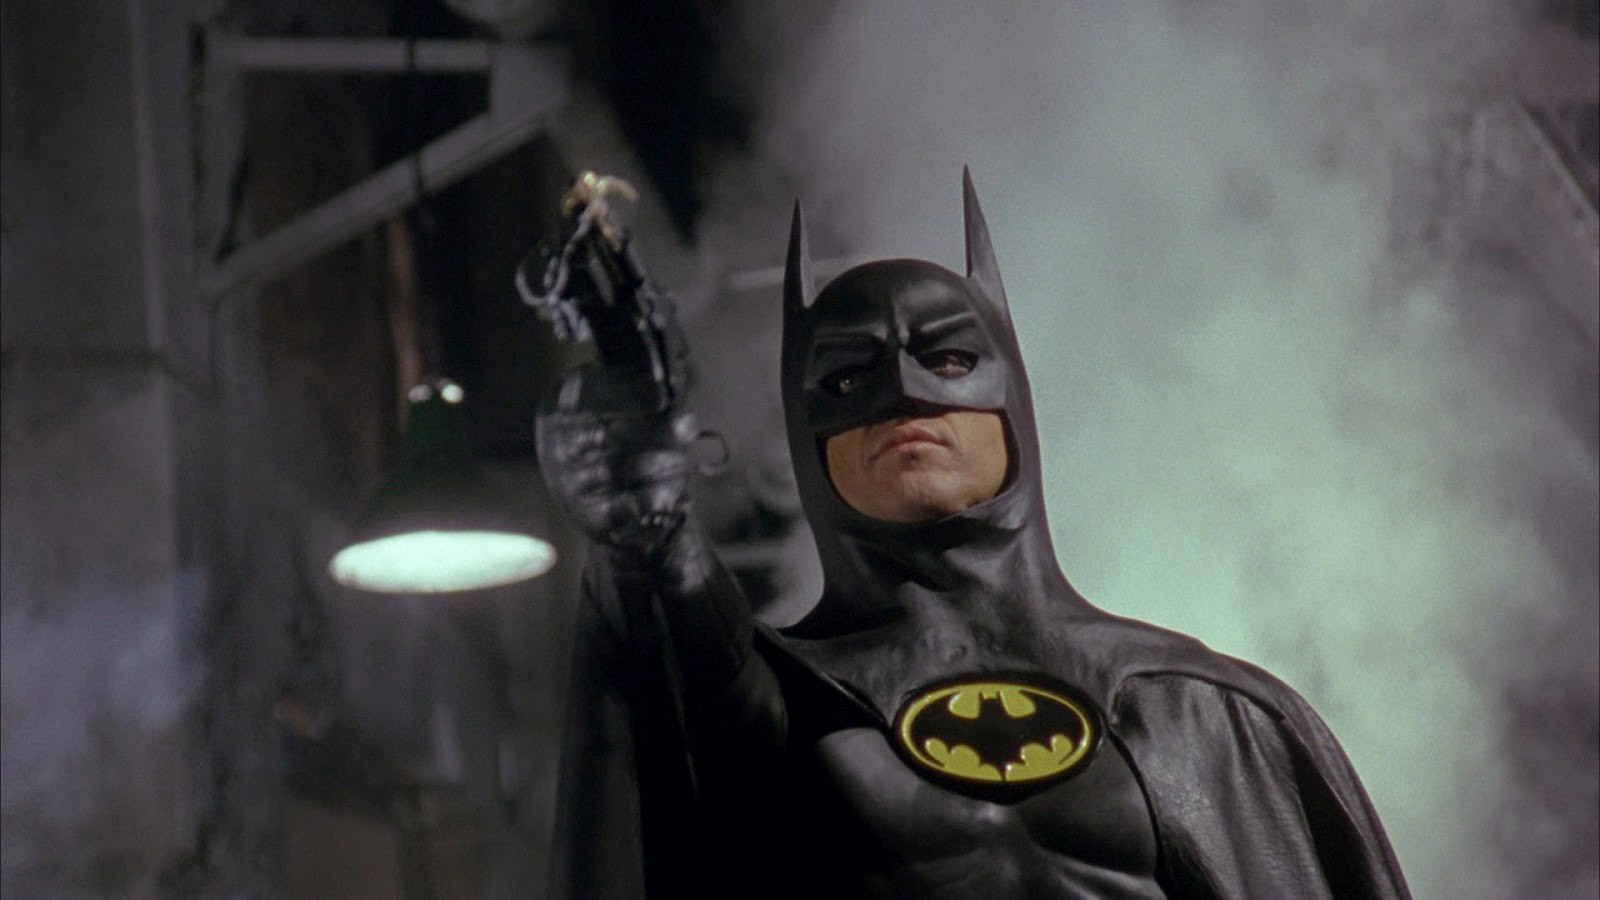 Michael Keaton as Batman, in the movie of the same name.